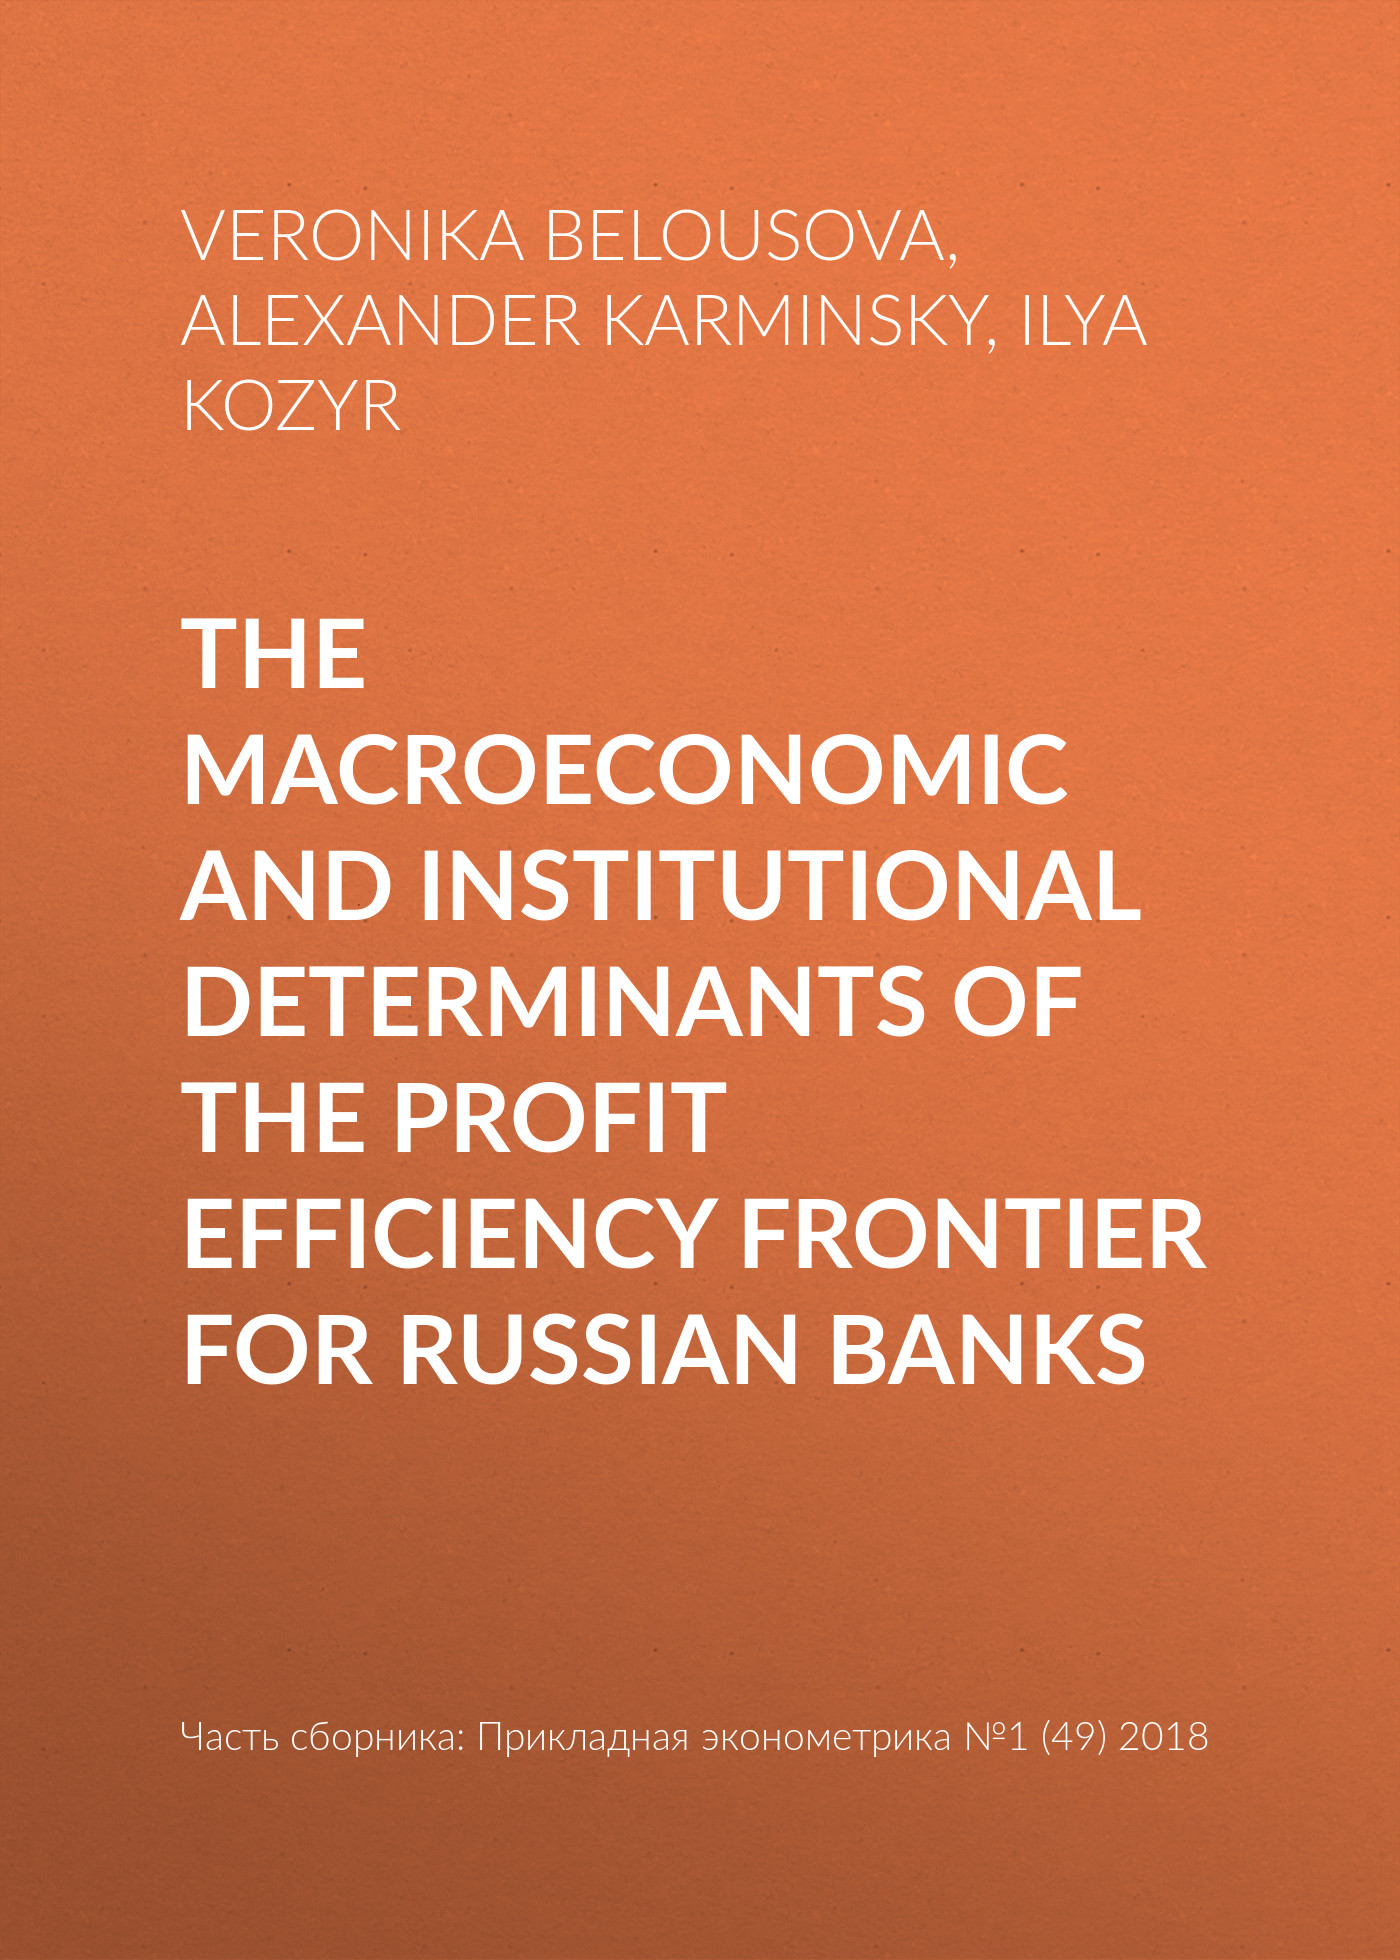 Veronika Belousova The macroeconomic and institutional determinants of the profit efficiency frontier for Russian banks anskin ultimate solution modeling activater активатор для размешивания альгинатной маски 1000 г